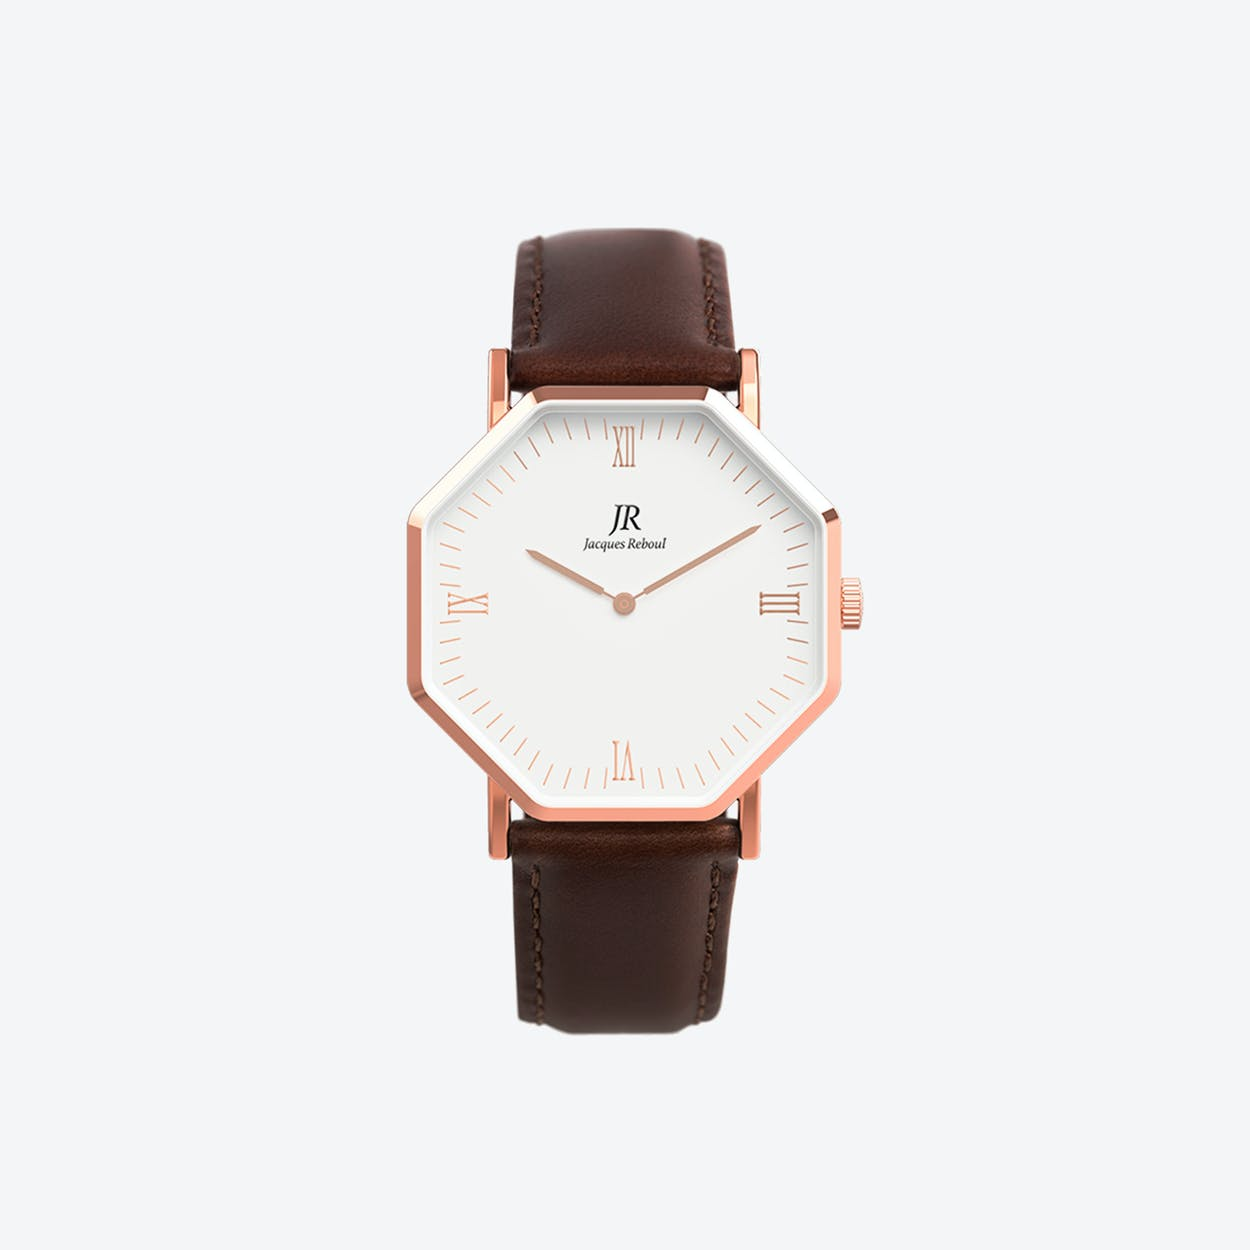 Lumiere Intense Roman Rose Gold Hexagonal Watch with Dk Brown Leather Strap 44mm